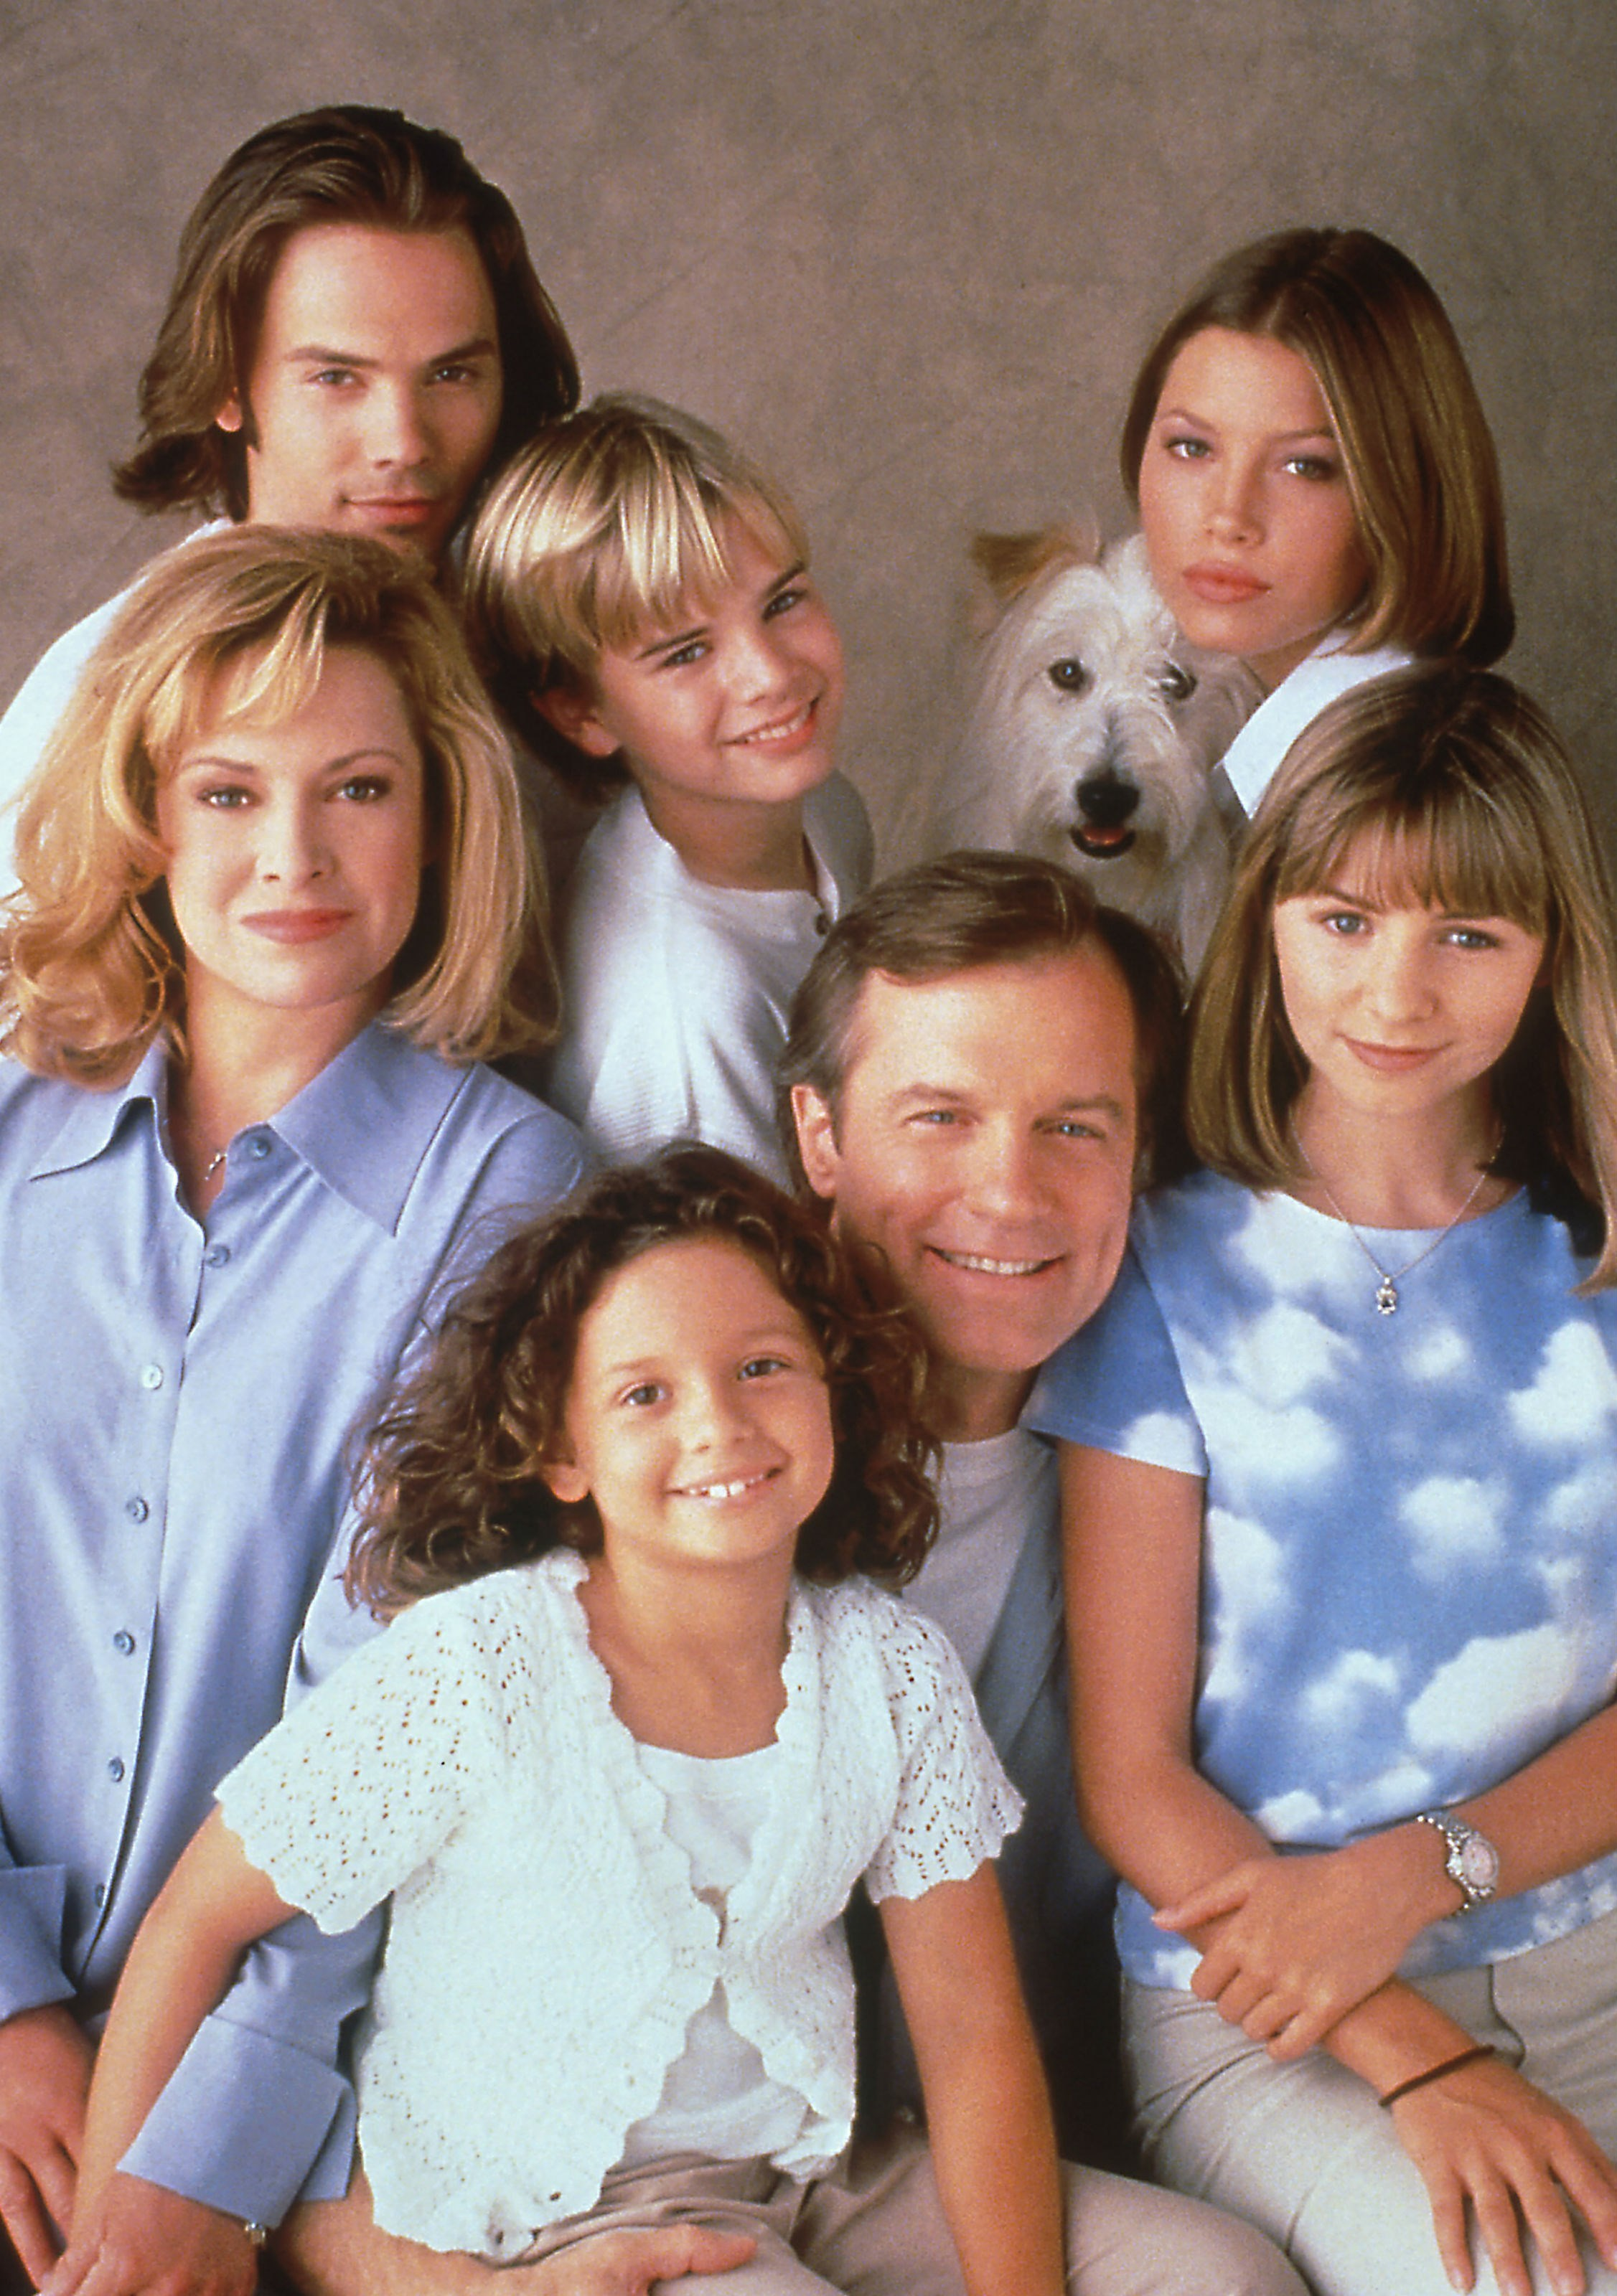 7th Heaven cast - Where are they now? | Gallery